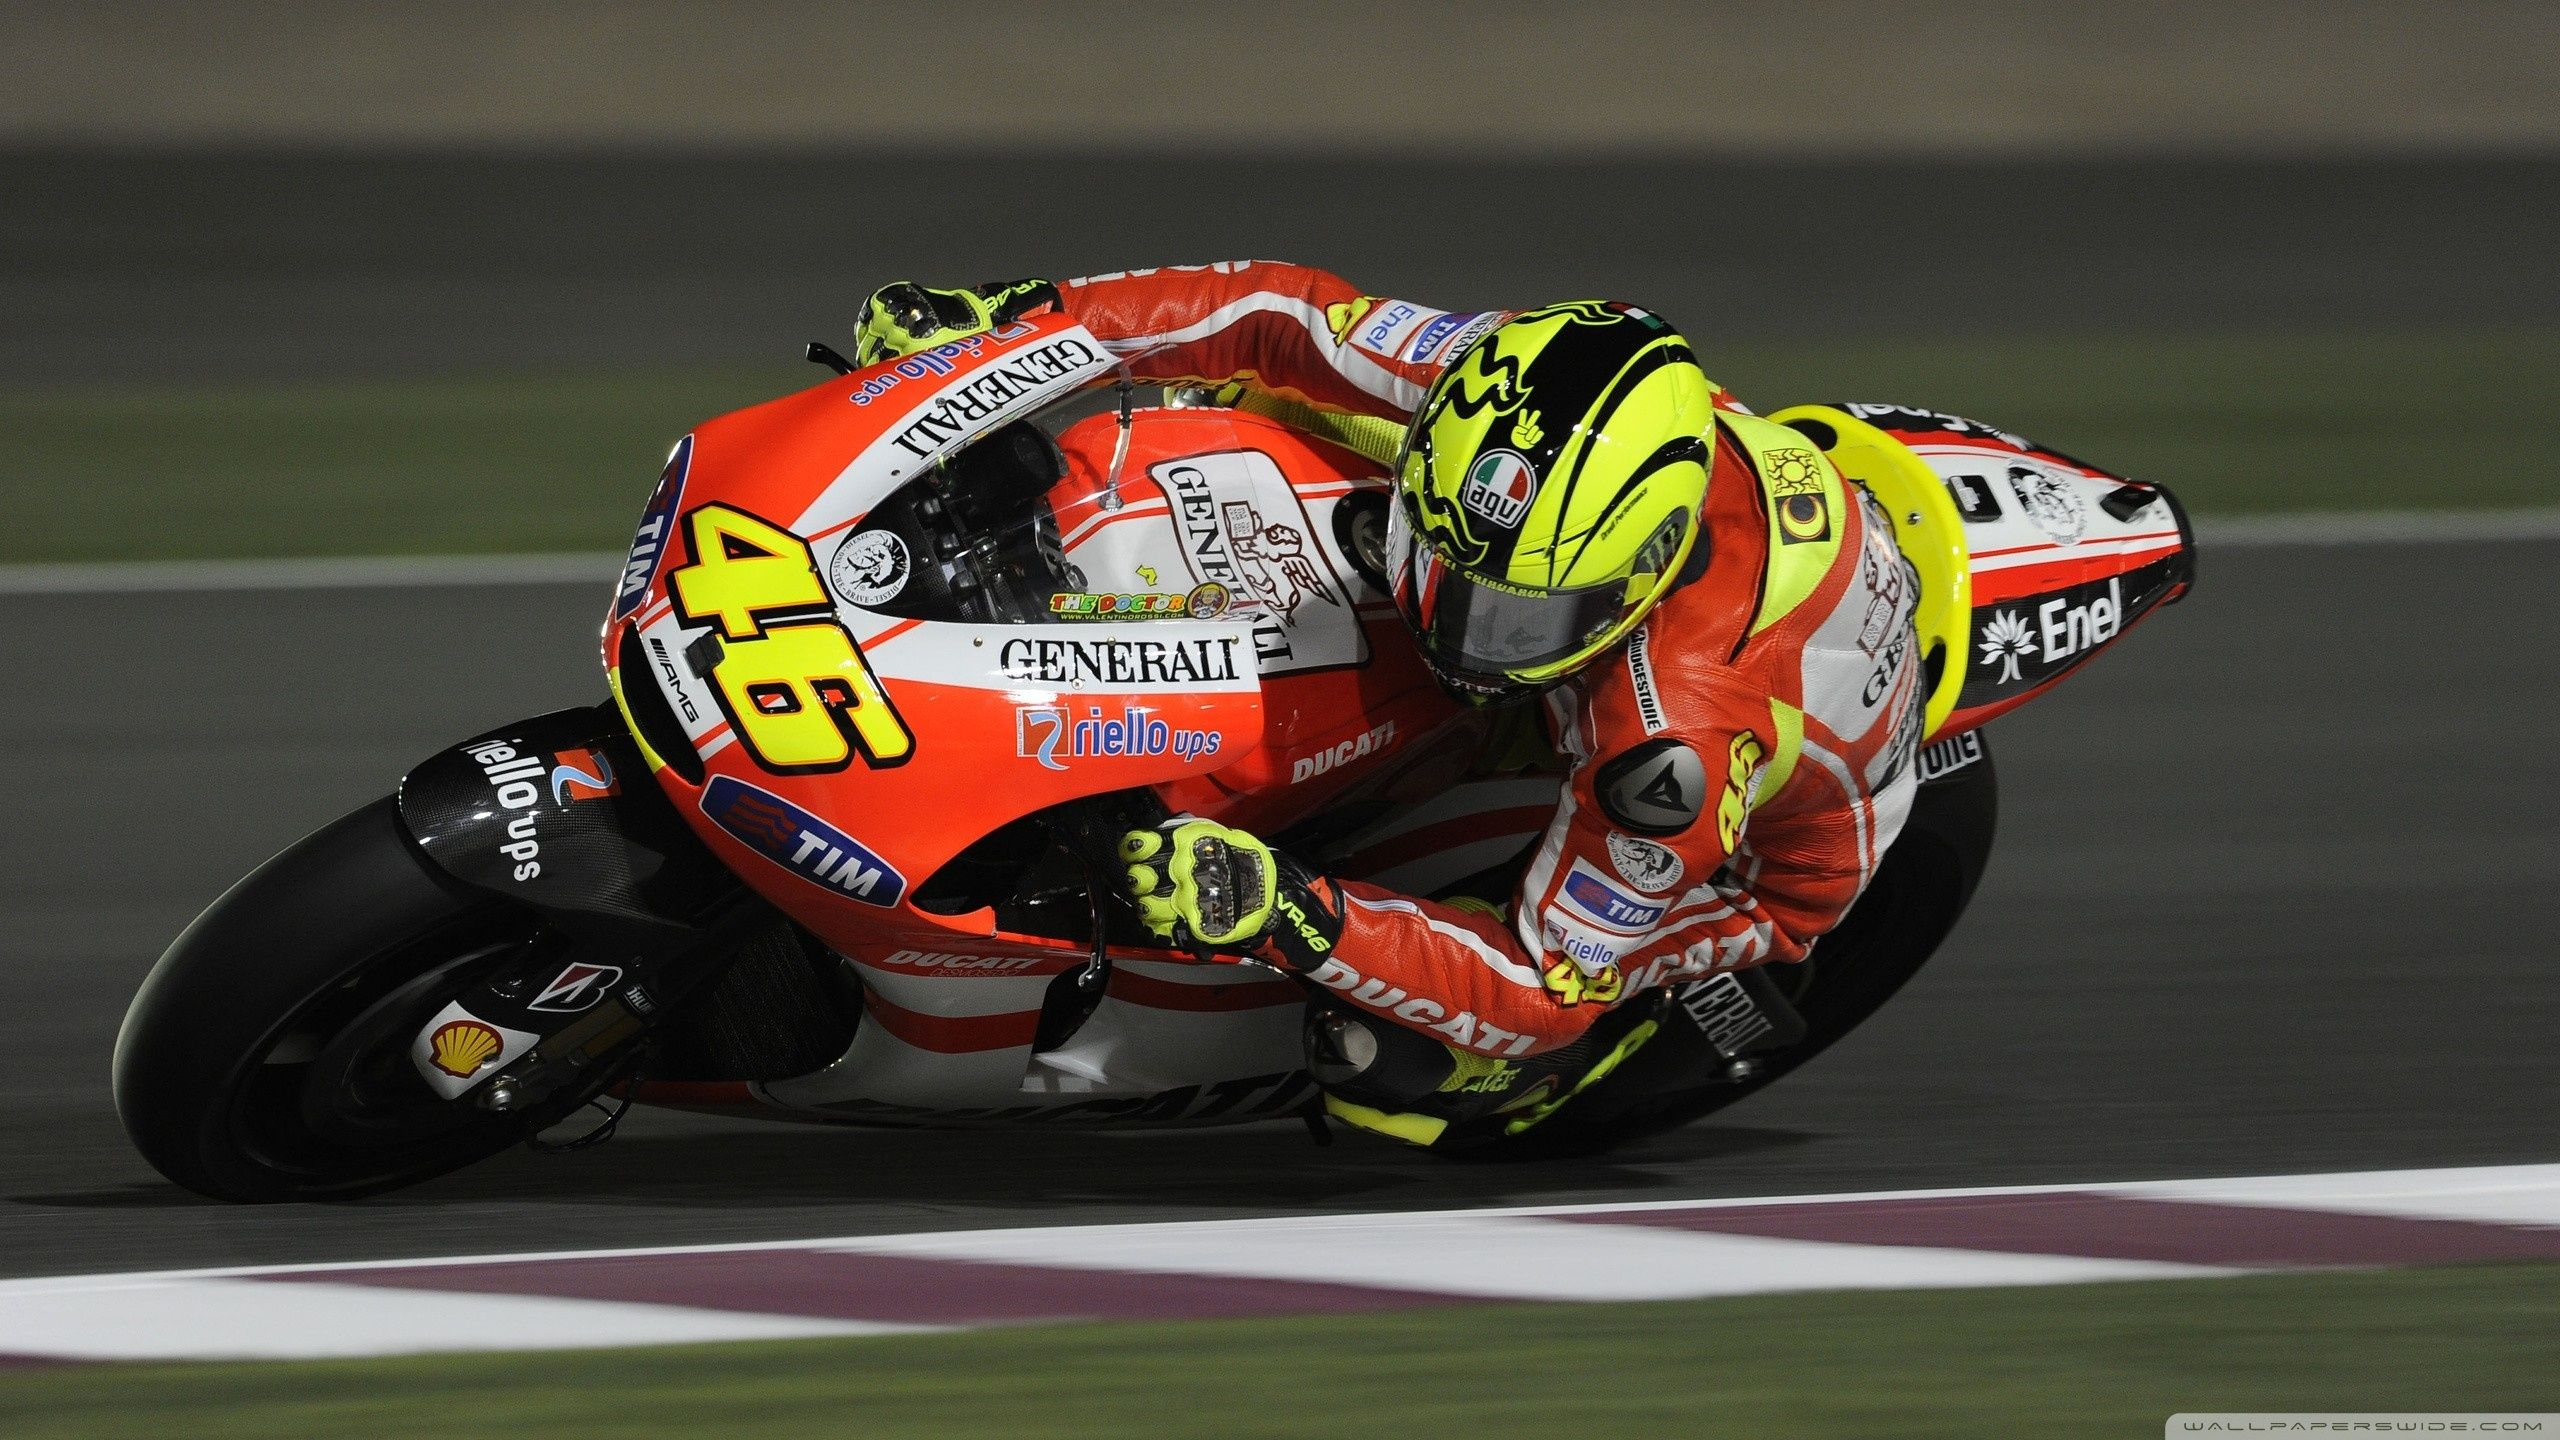 Rossi 4K wallpapers for your desktop or mobile screen free and easy to download